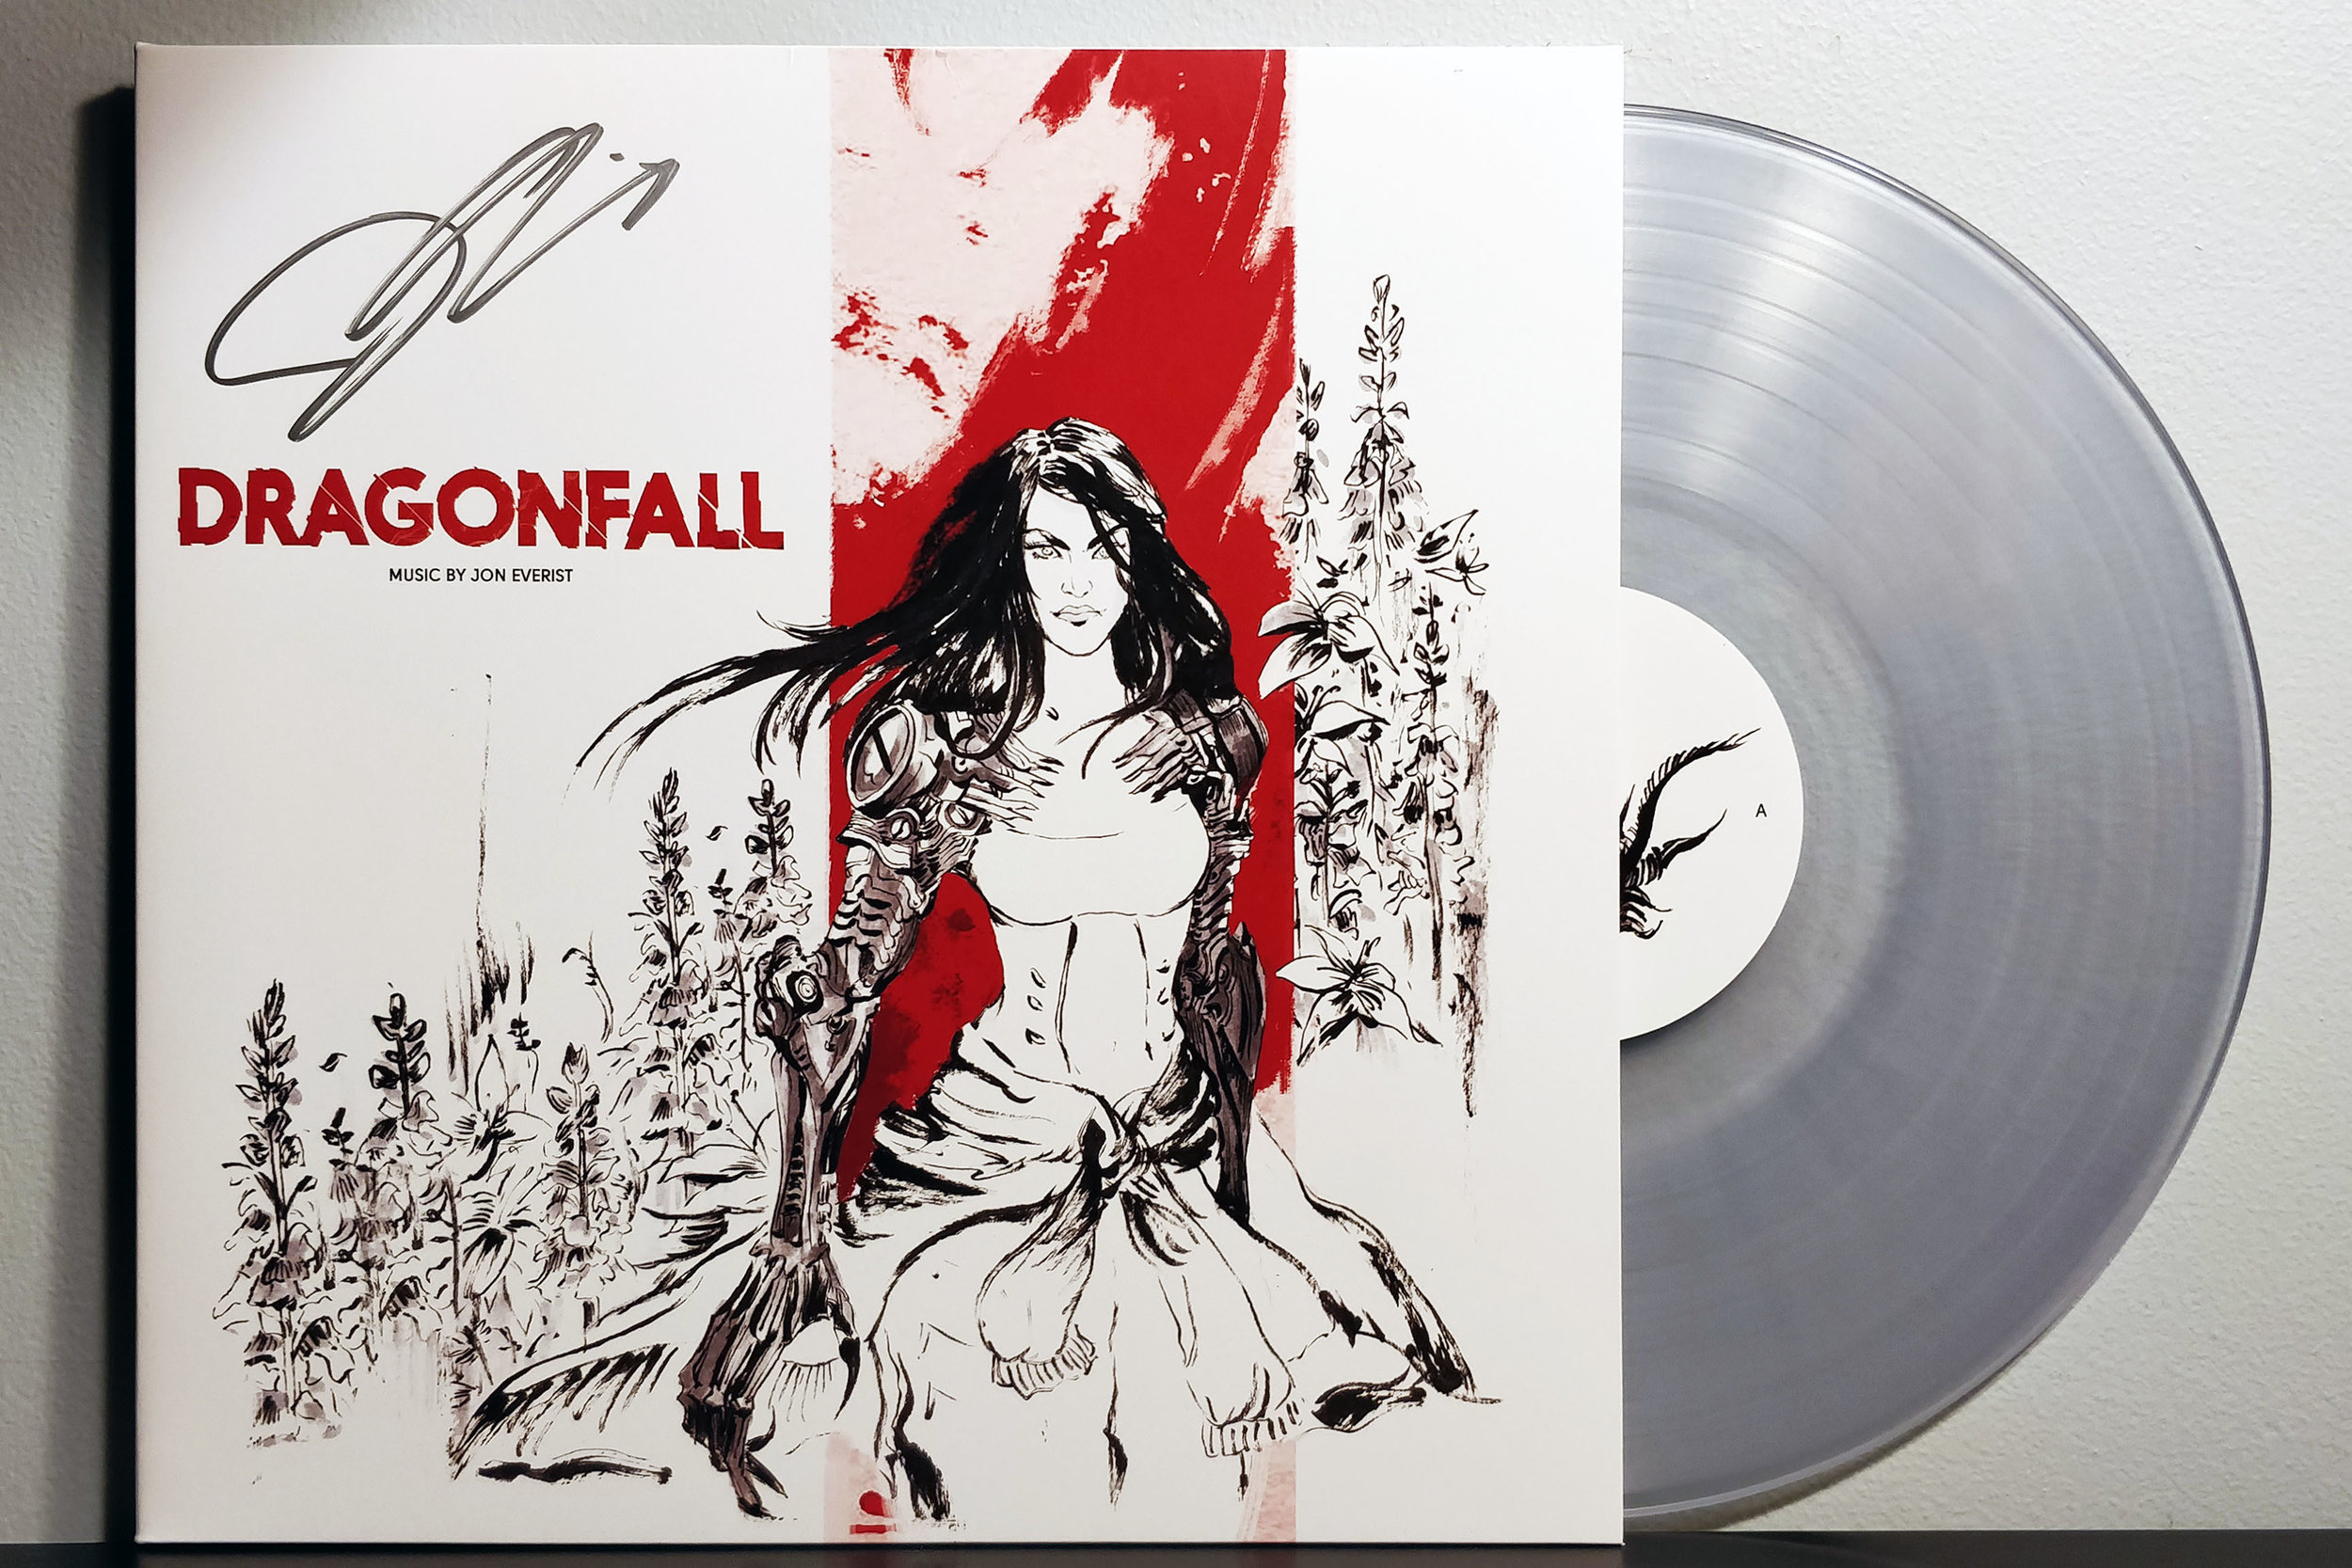 Shadowrun: Dragonfall by Jon Everist pressed on clear vinyl by Black Screen Records